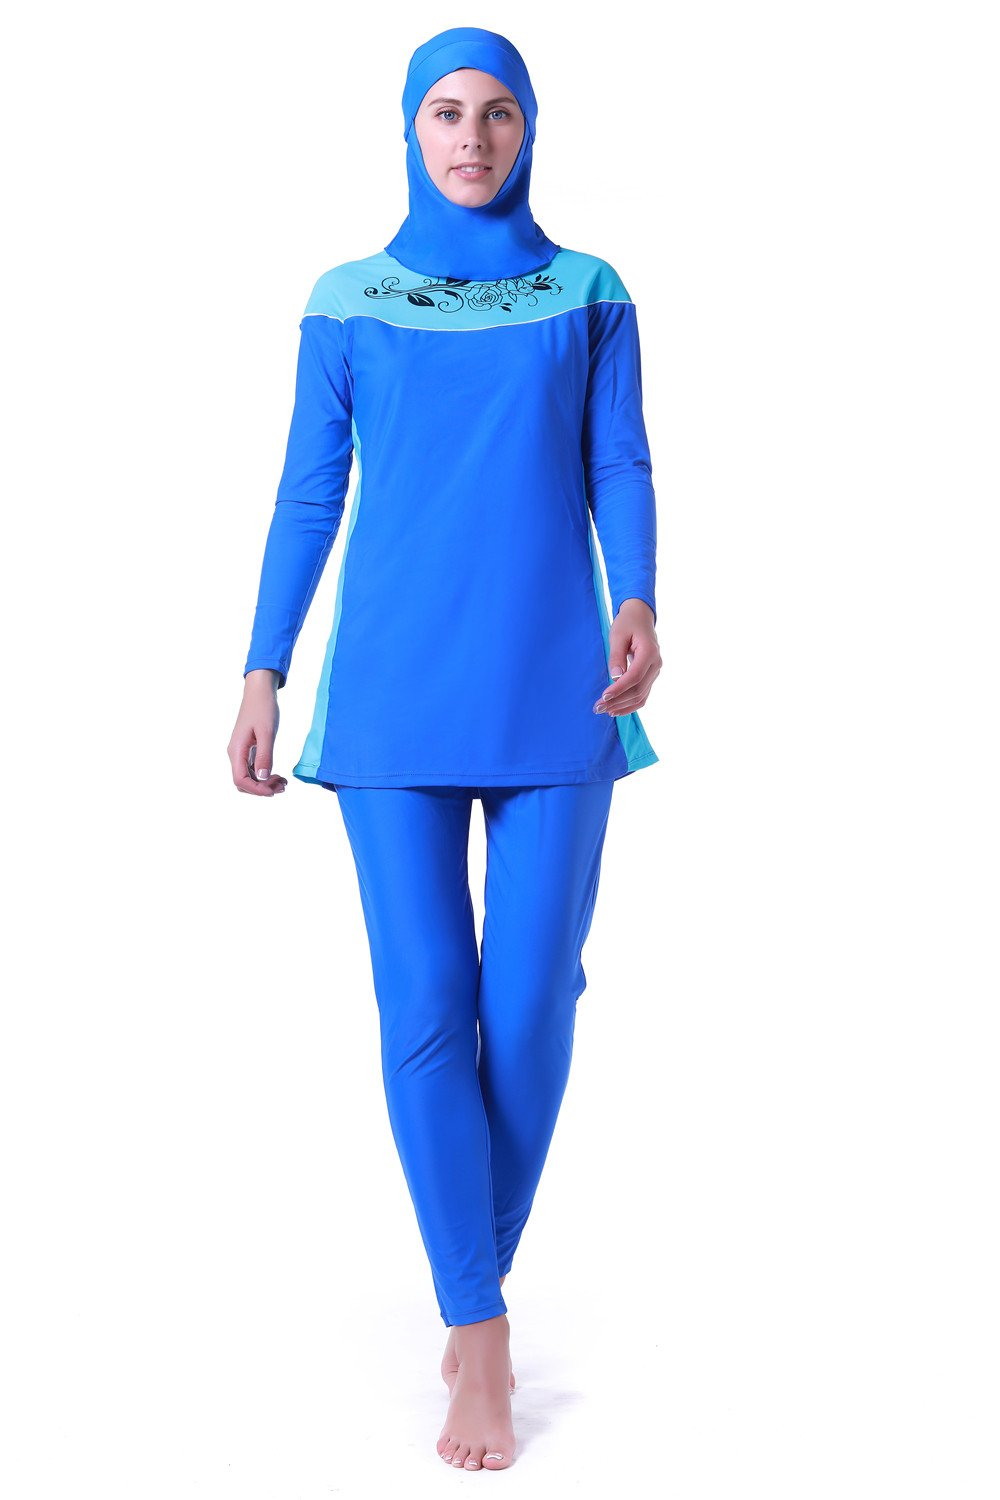 Women Muslim Swimwear Full Coverage Islamic Modest Swimsuit 3 Pieces Full Body with Hijab Sun Protection (ZH14003-blue, L)